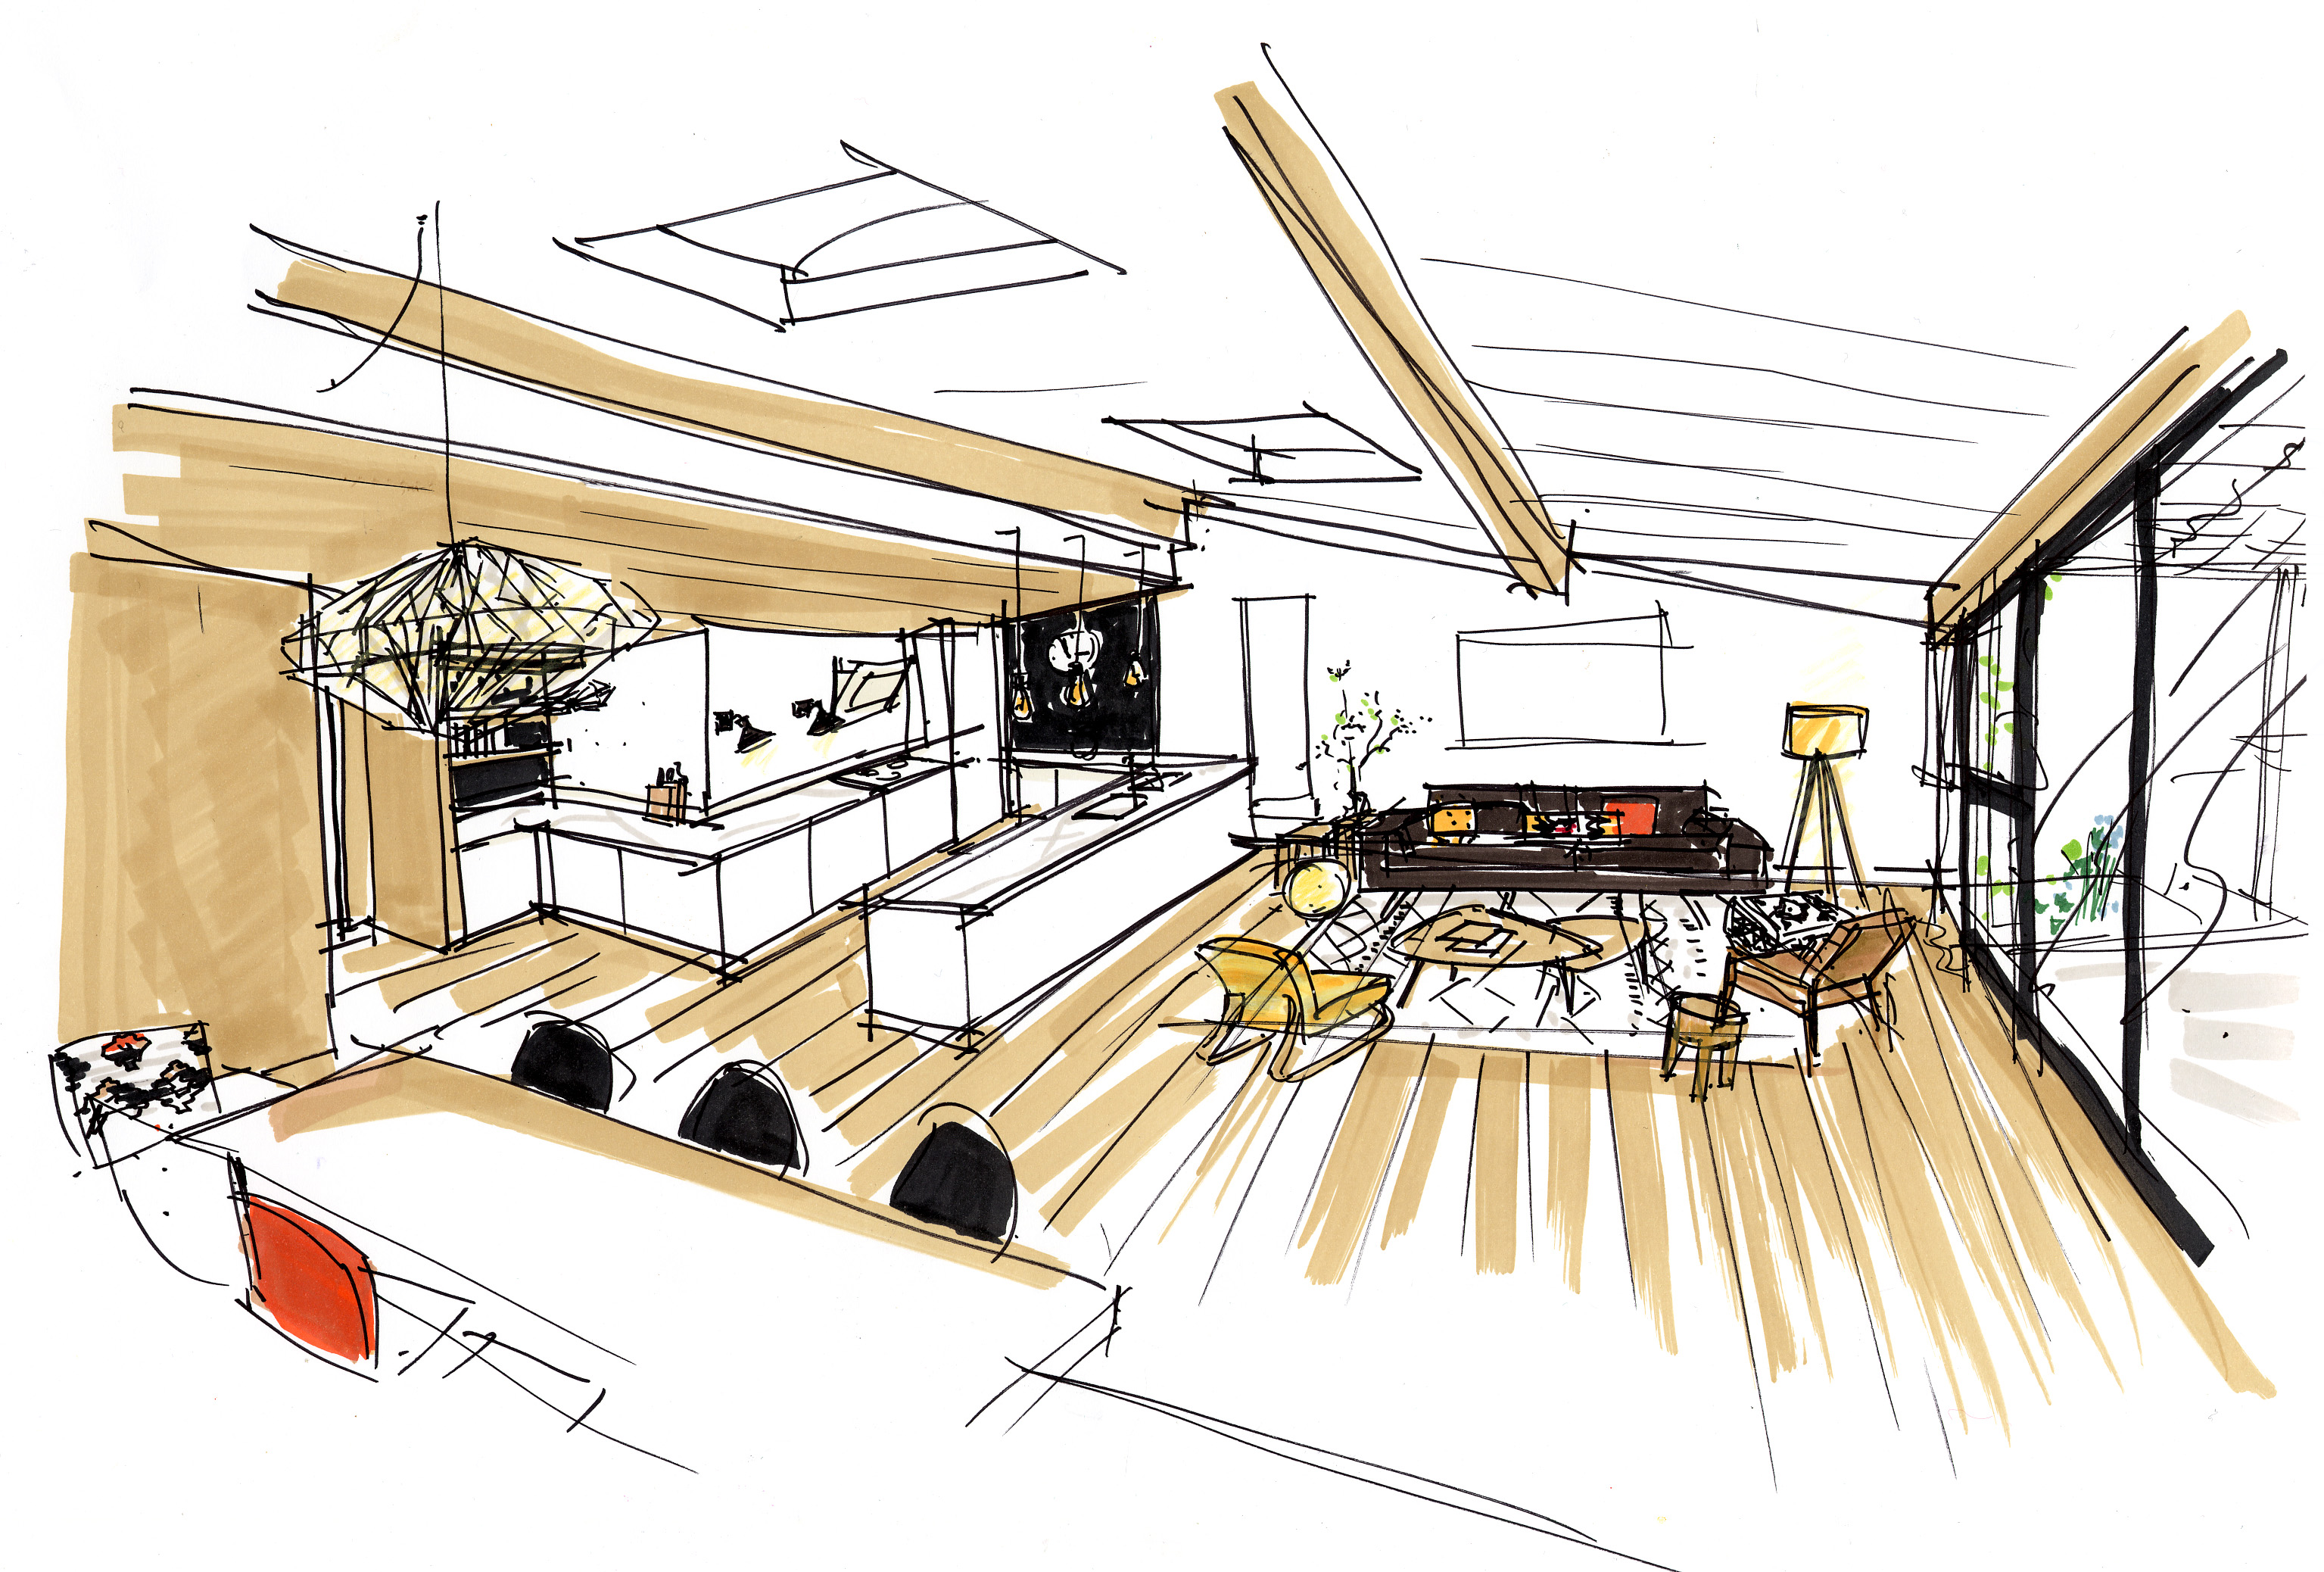 loft-paris-croquis-architecture-interieure-bnf-5